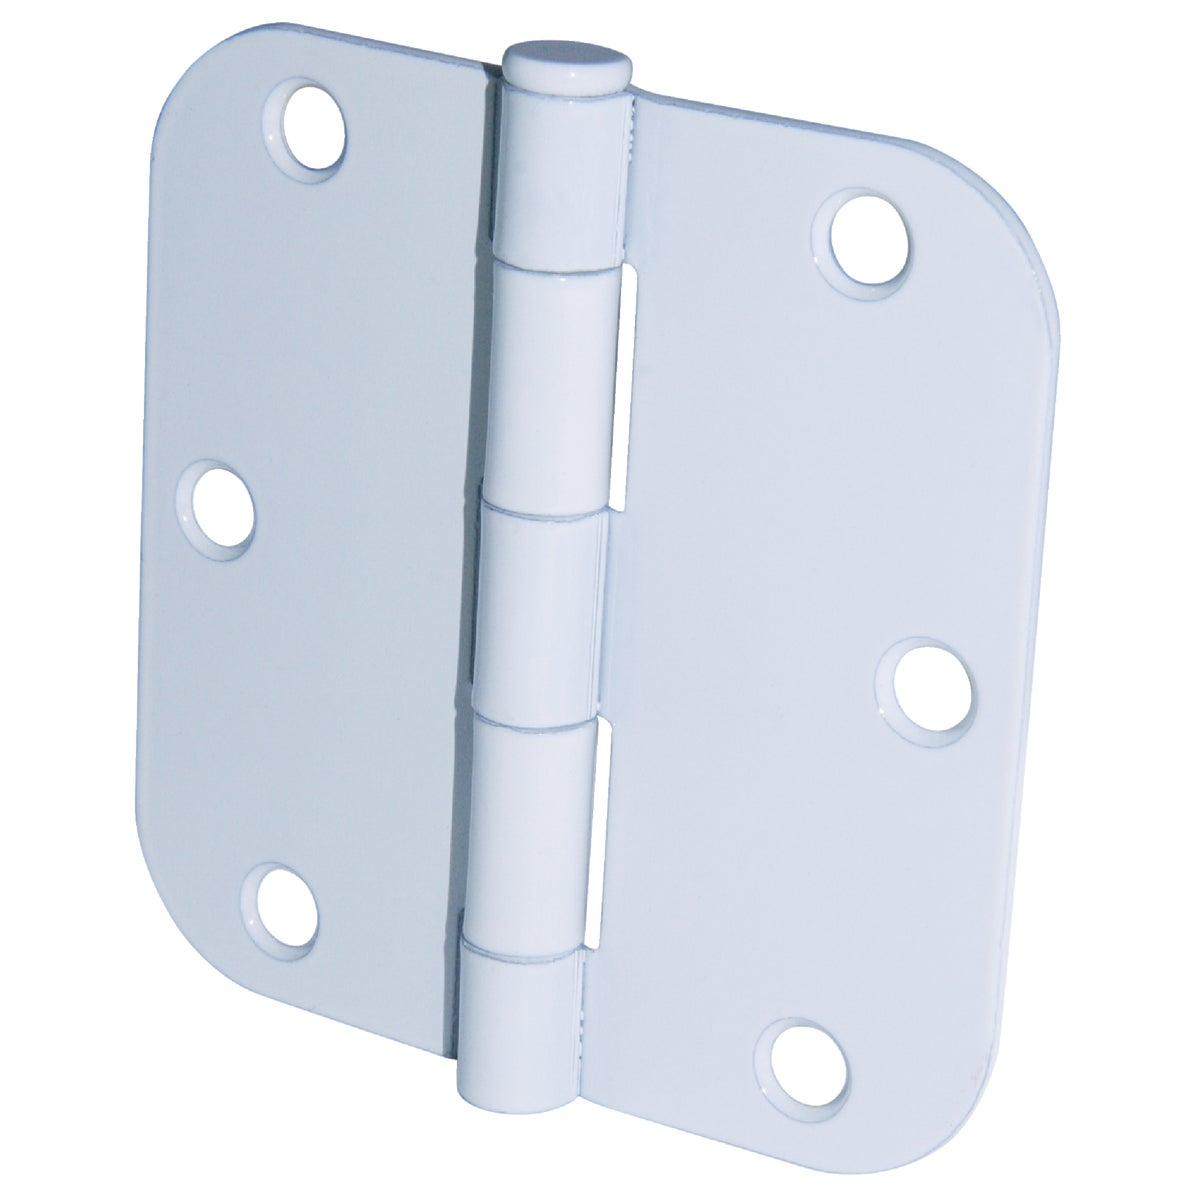 "3.5"" 5/8RAD WH 3PK HINGE - 61746 by Ultra Hardware"